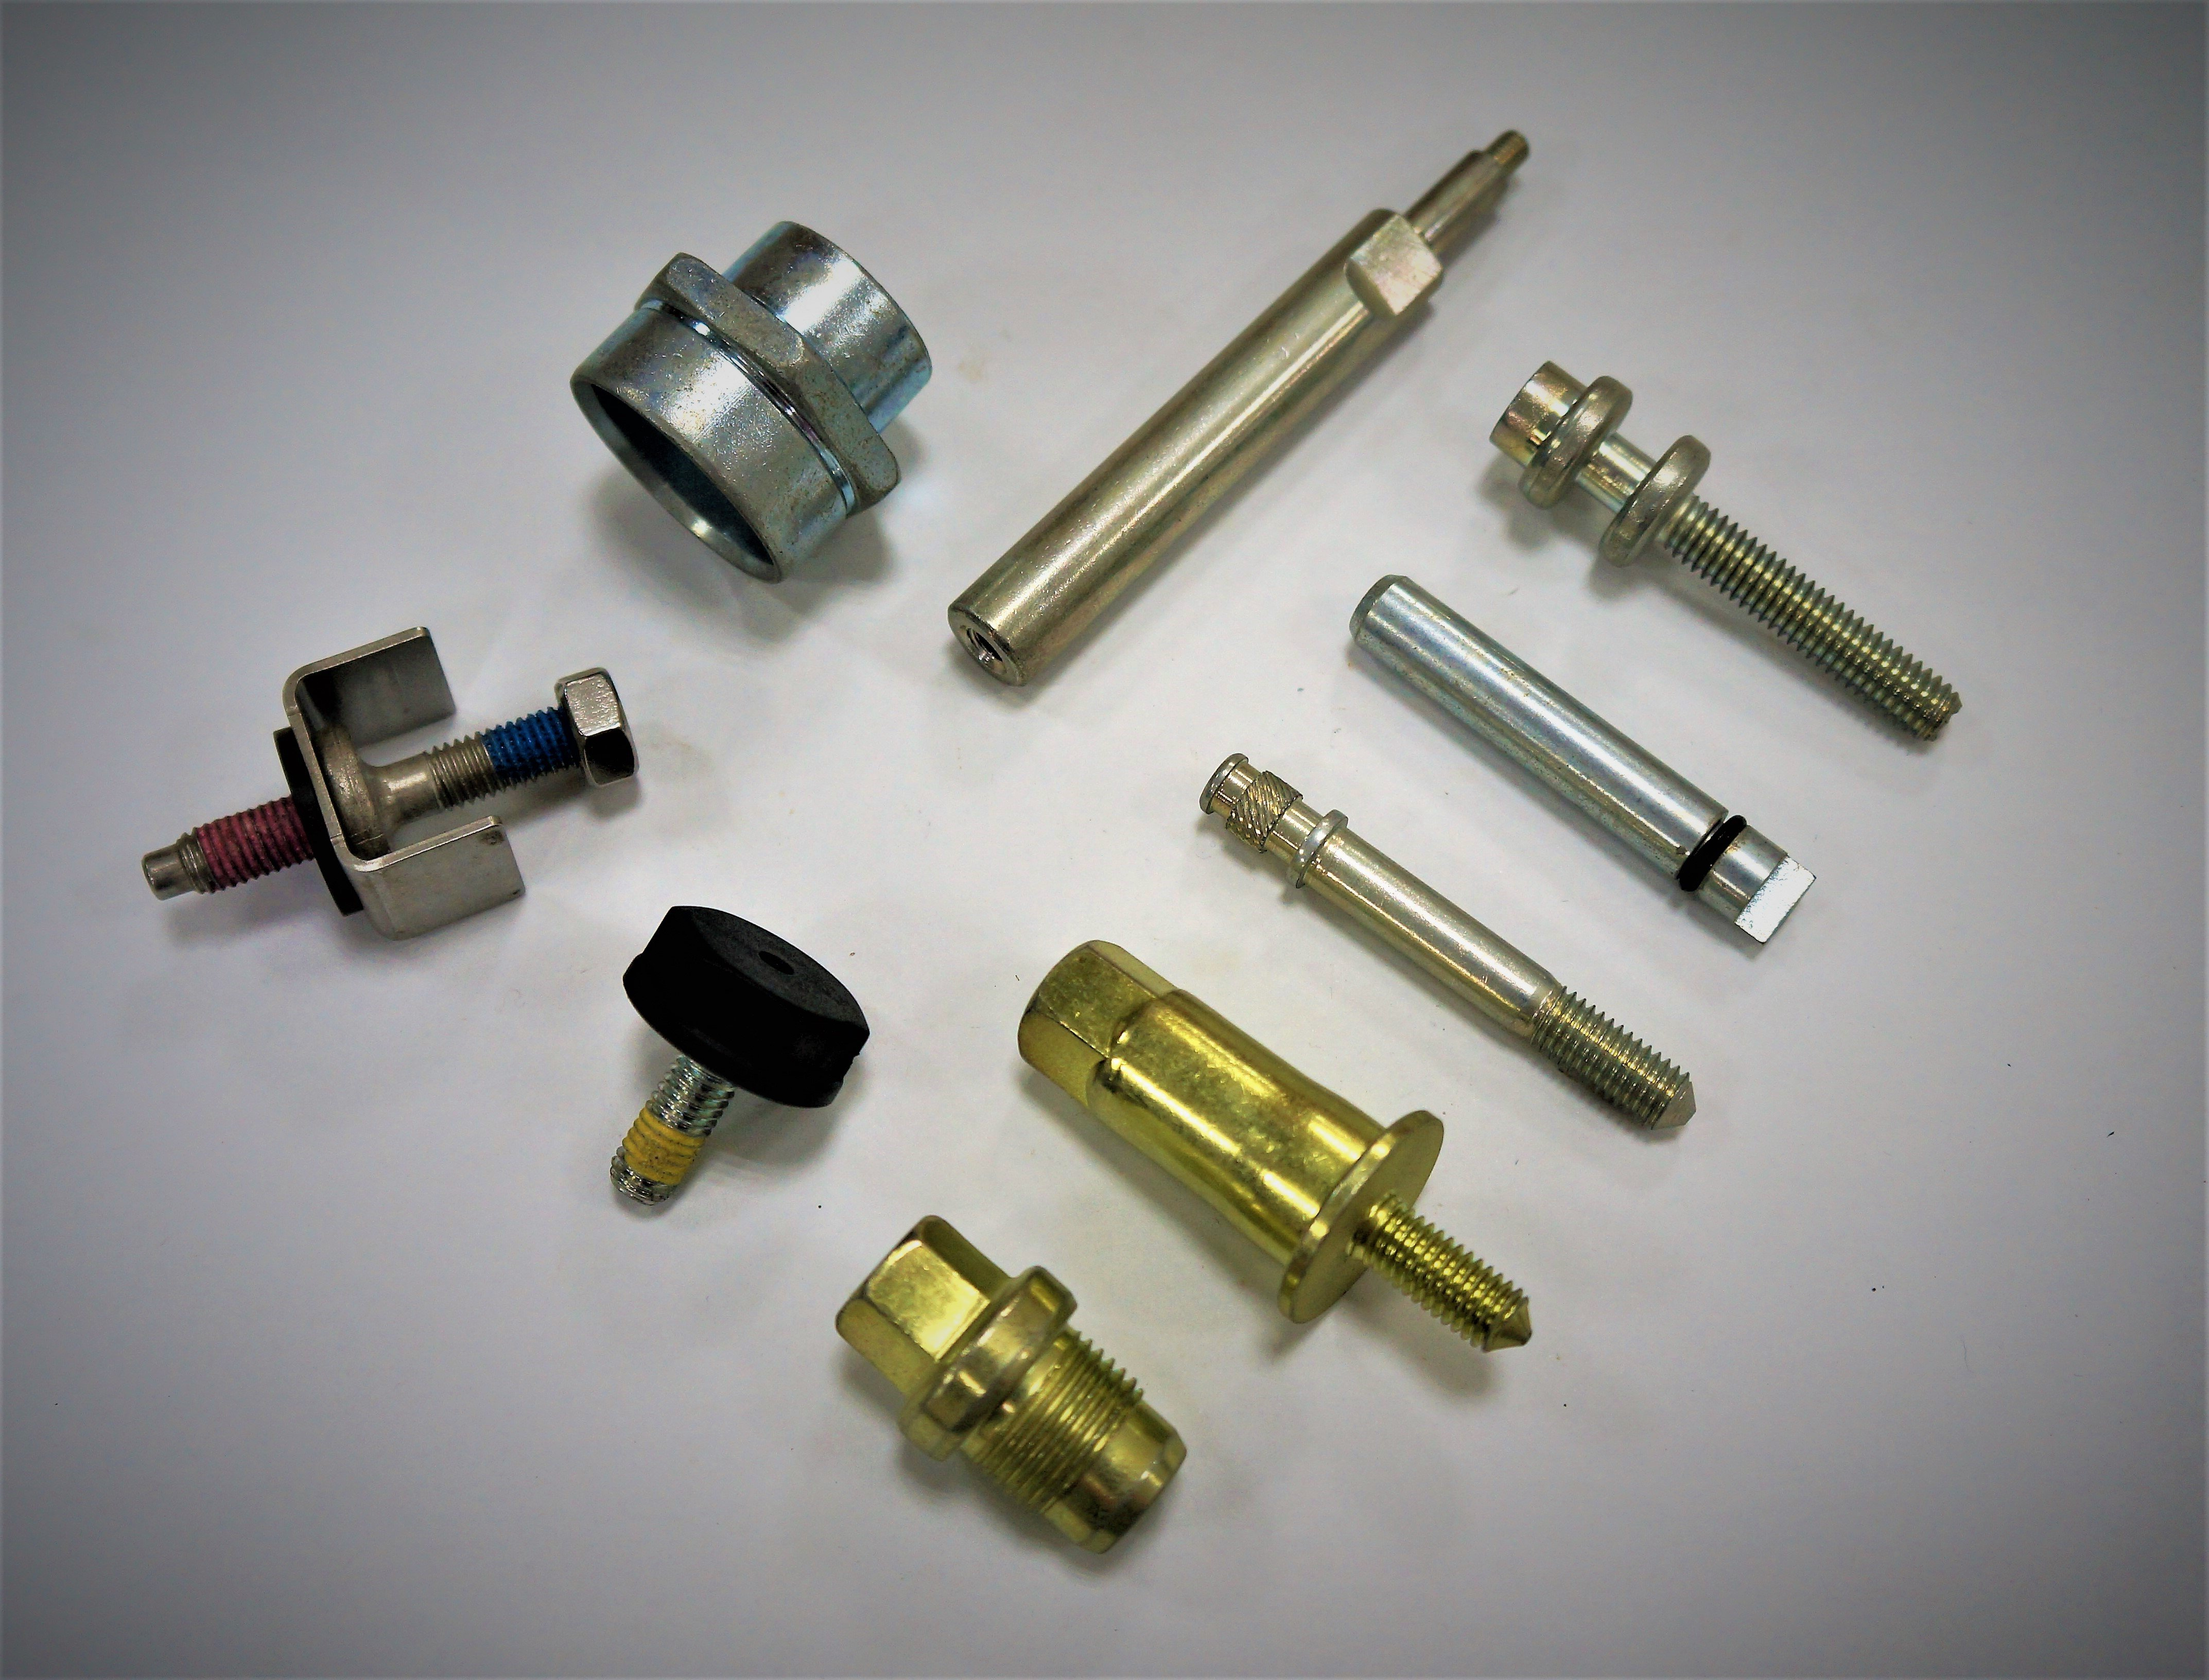 Truck / Trailer / Heavy Duty Special Screw with O-Ring for Vehicle Fastener made by Sunny Screw Industry 三能螺栓工業股份有限公司 - MatchSupplier.com